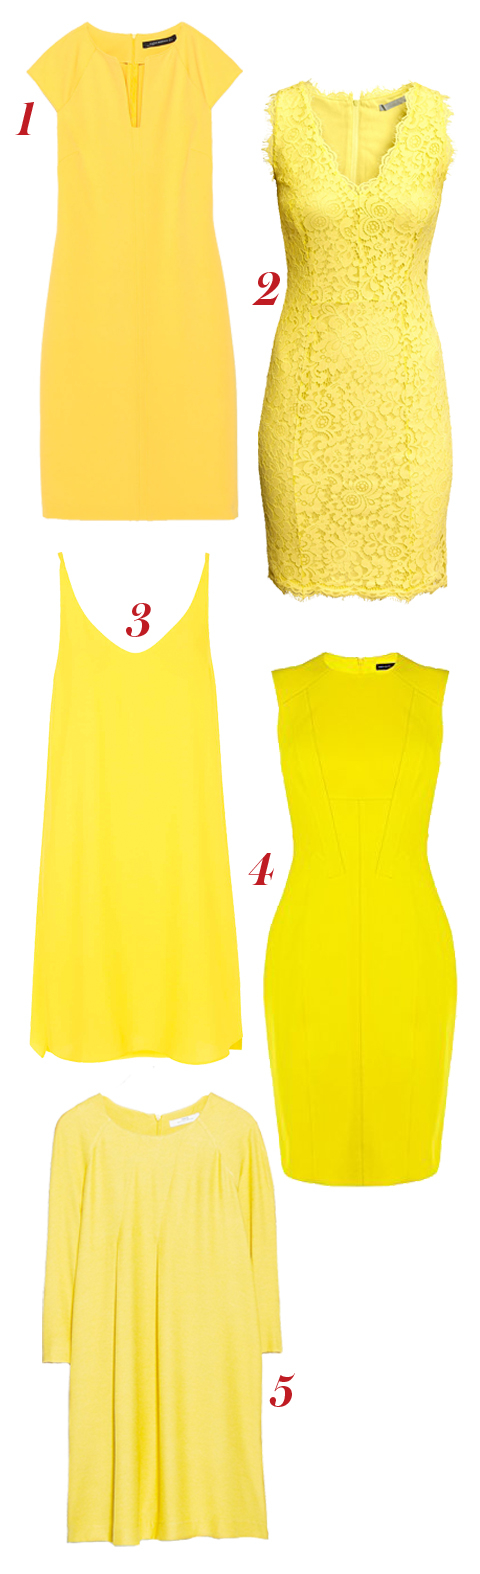 Minions Dresses - Embed